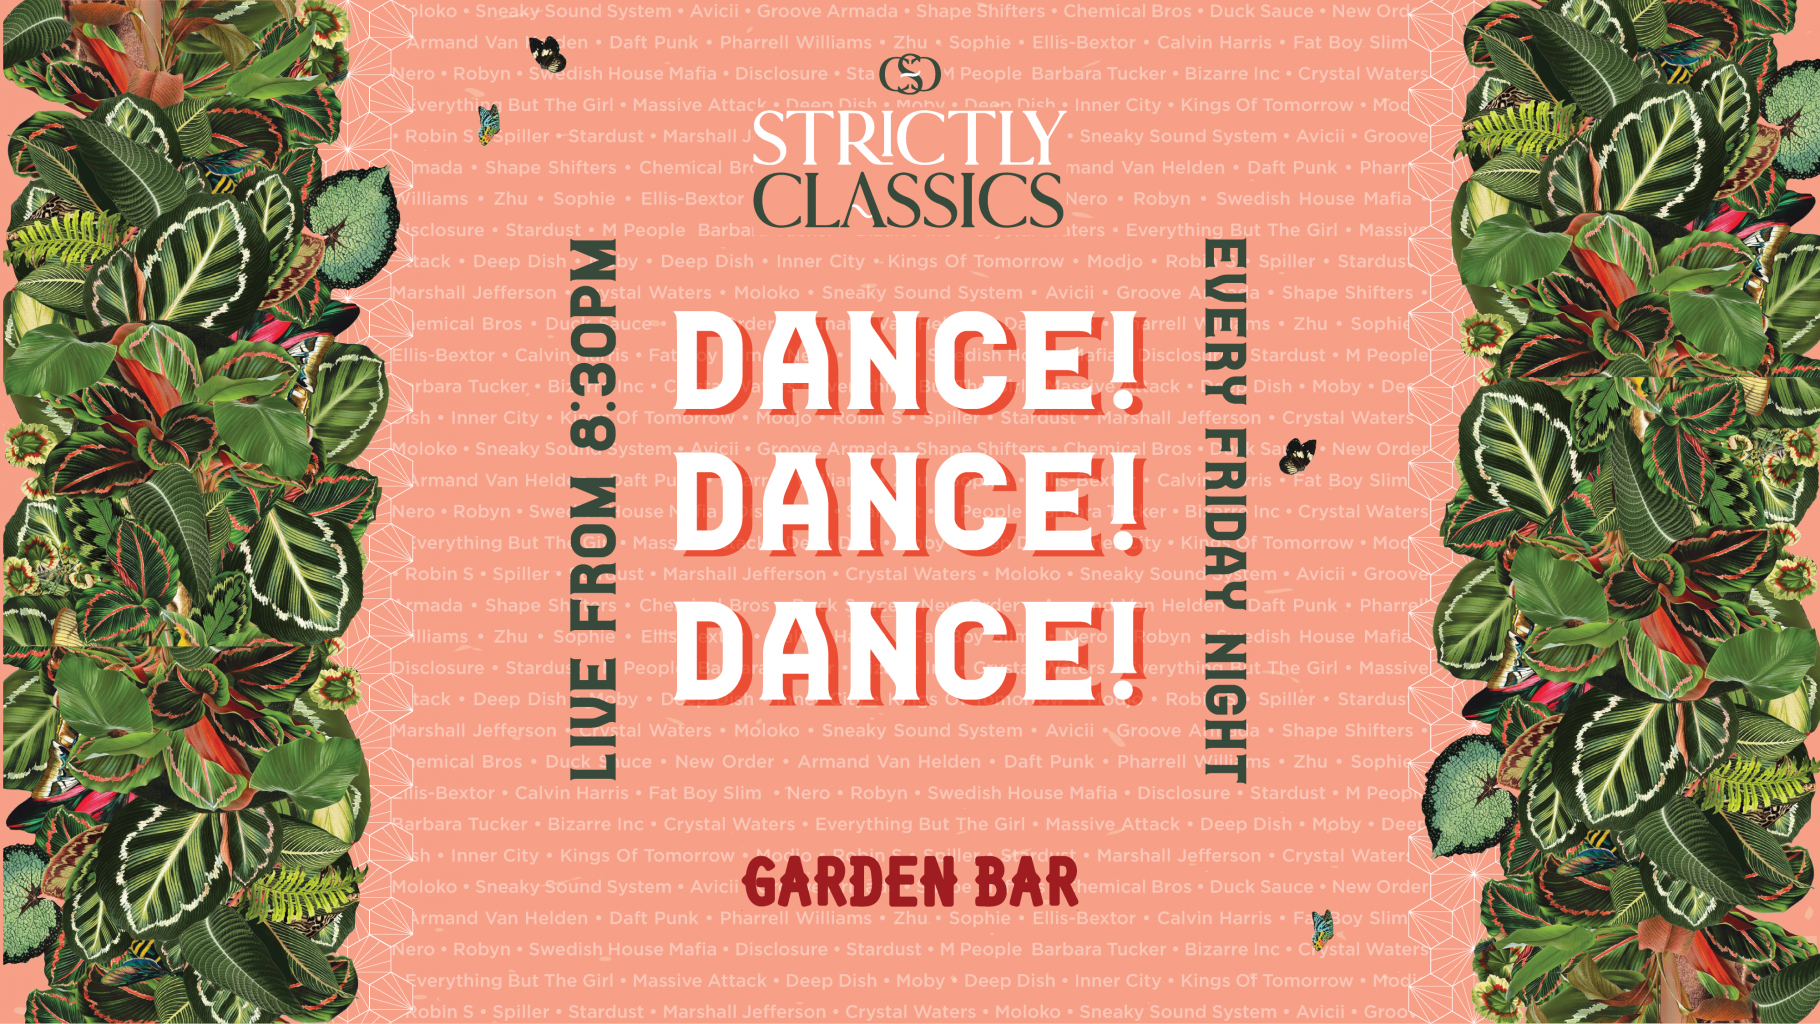 LIVE: Strictly Classics in the Garden Bar